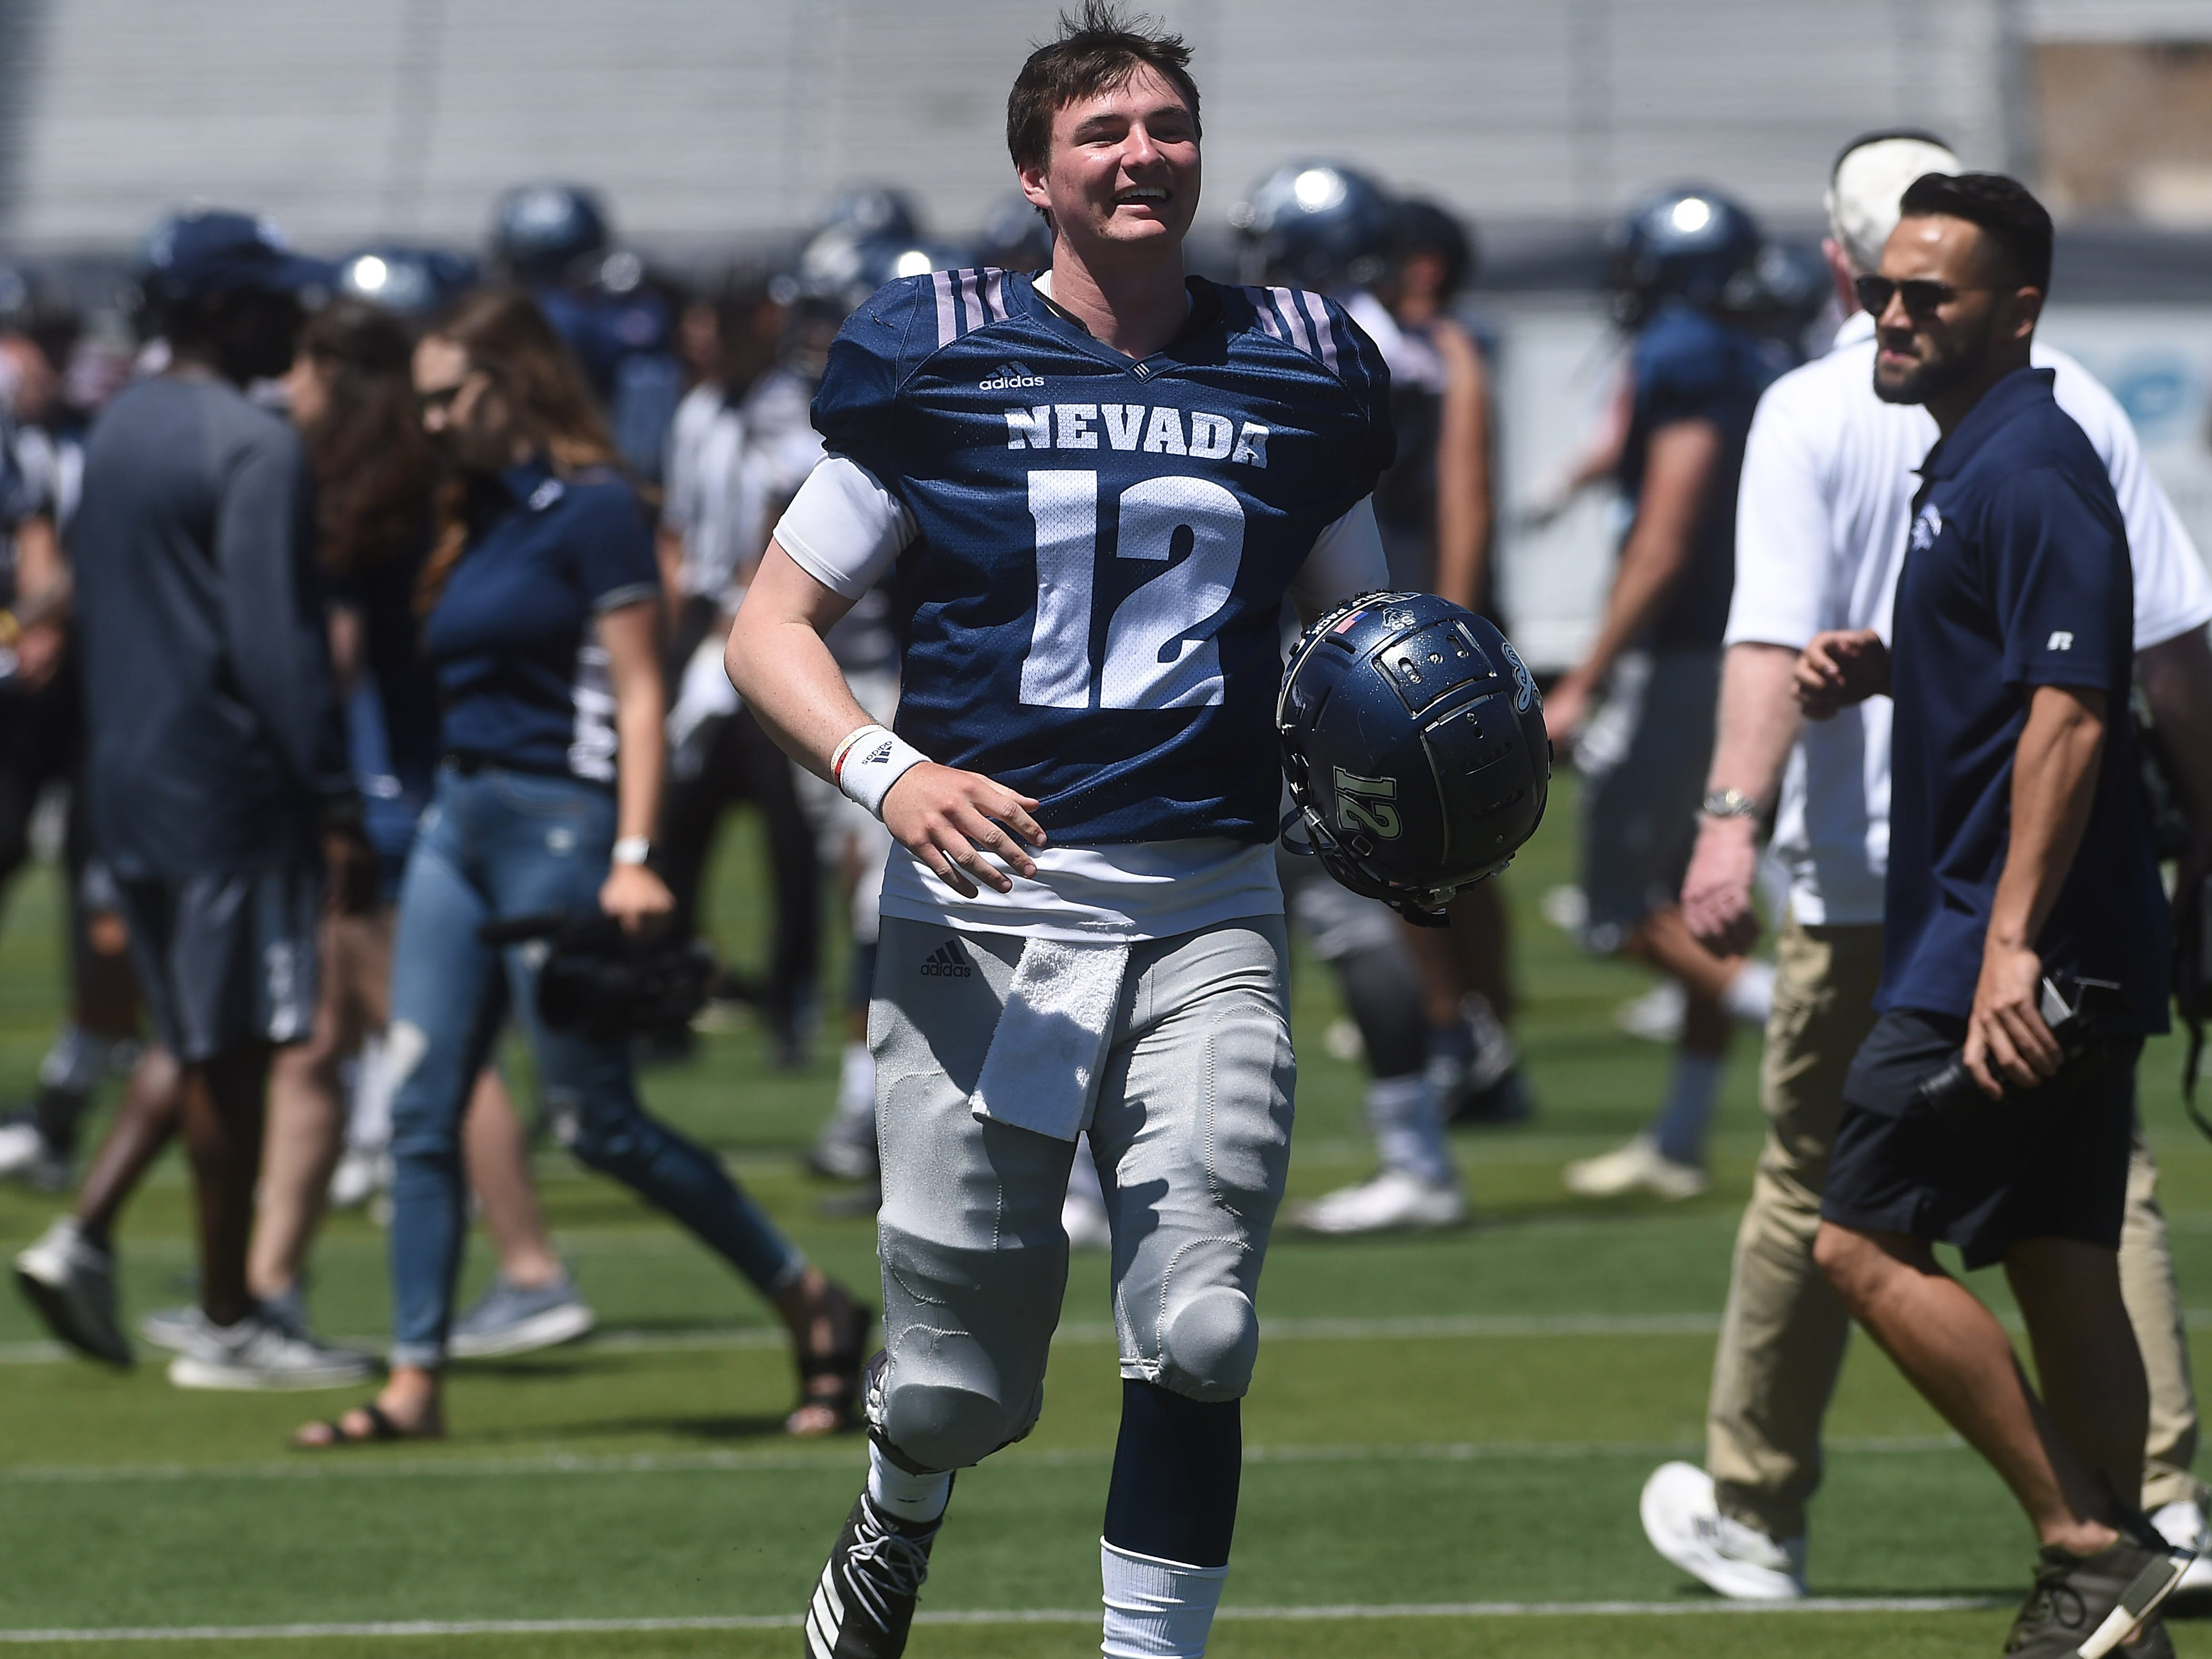 Quarterback Carson Strong participates during Nevada Football's annual spring game at Mackay Stadium in Reno on April 27, 2019.